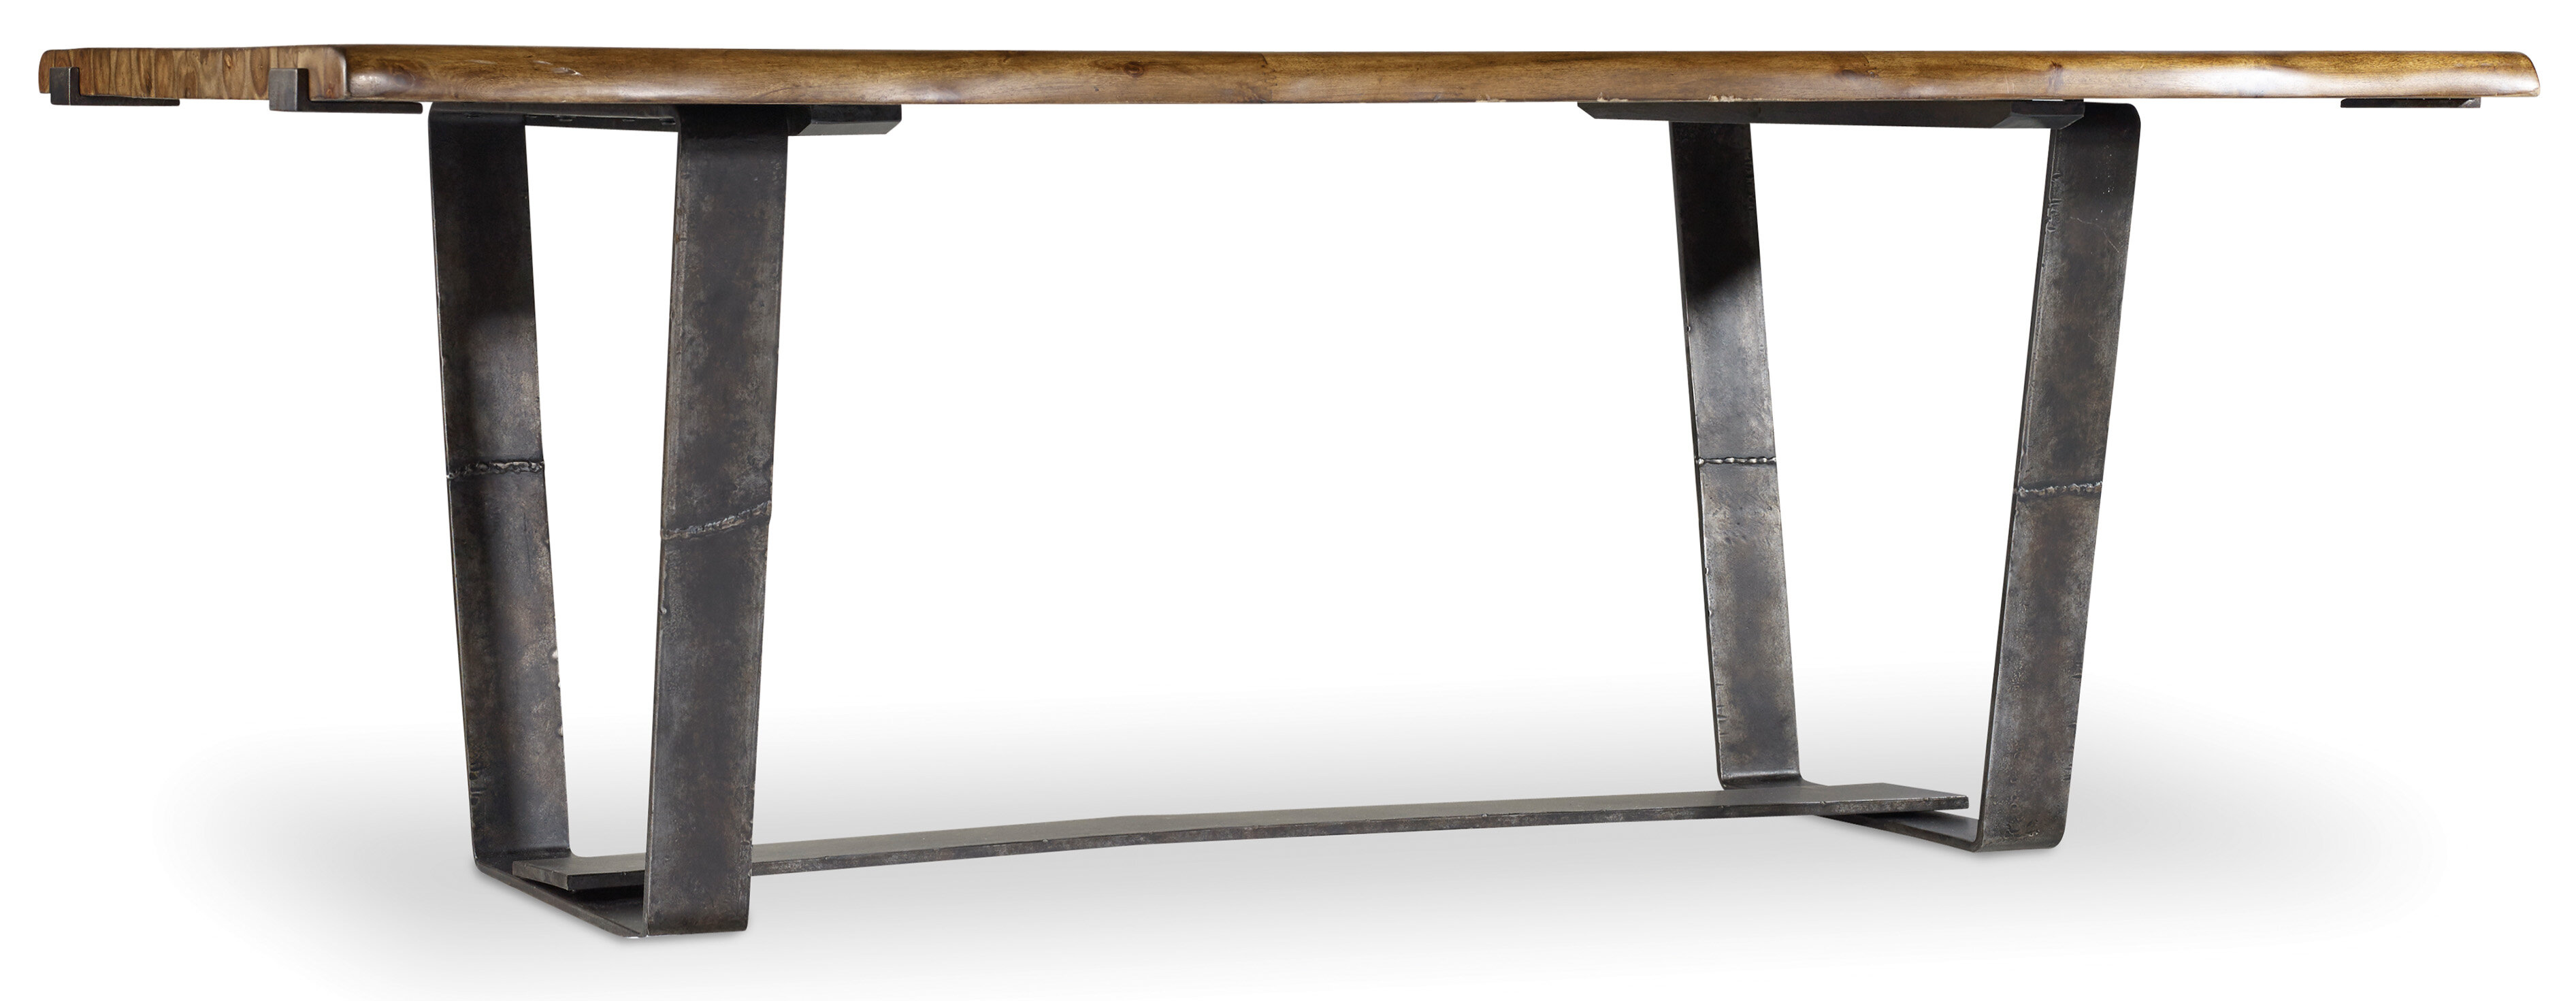 steel maple with wood ontario table base home dining img arrow design modern canada muskoka white in toronto edge live living